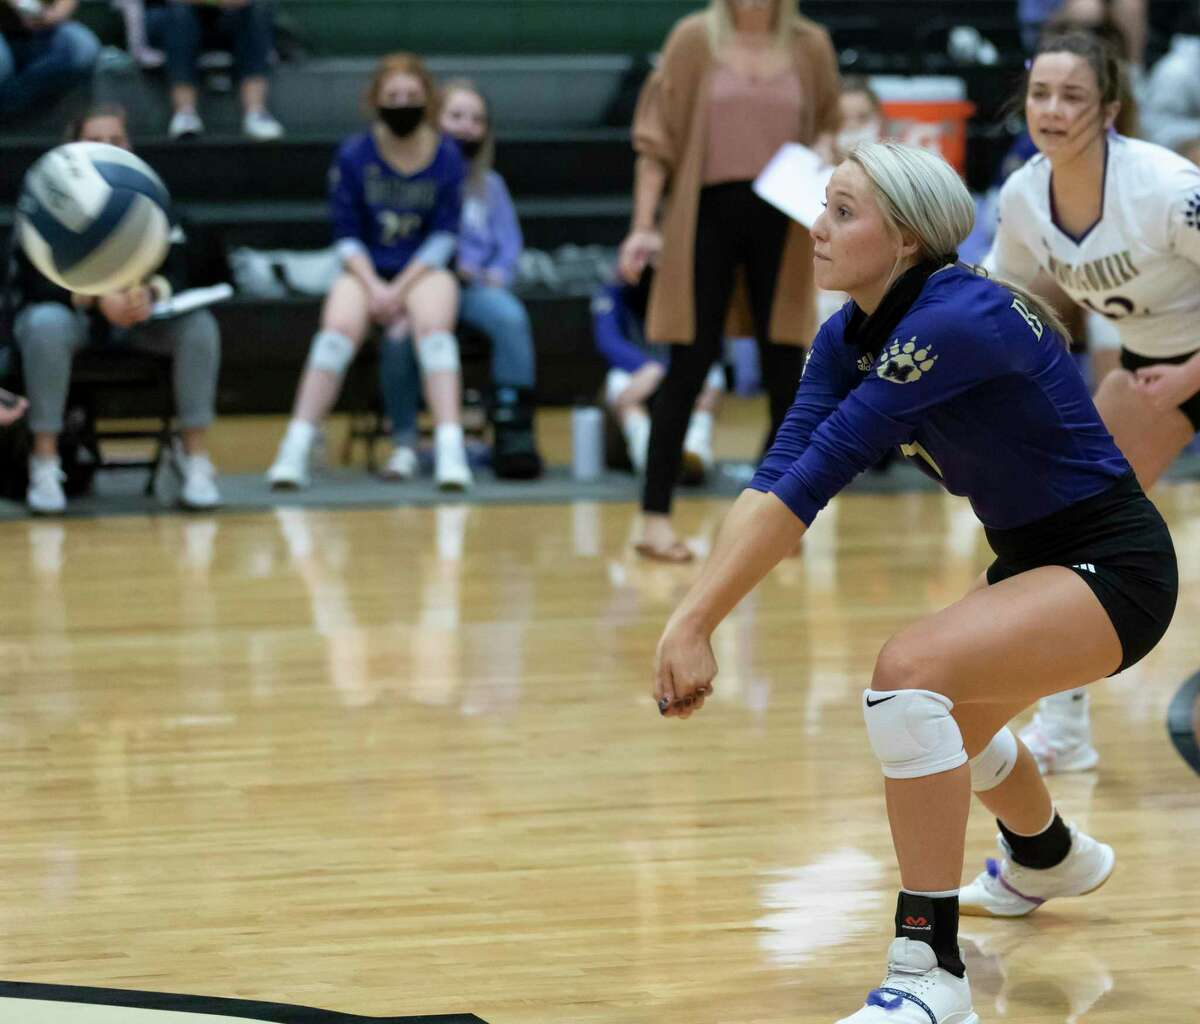 Montgomery outside hitter Emma Ely (7) returns a servev during the first set of a District 20-5A volleyball match at Kingwood Park High School in Kingwood.